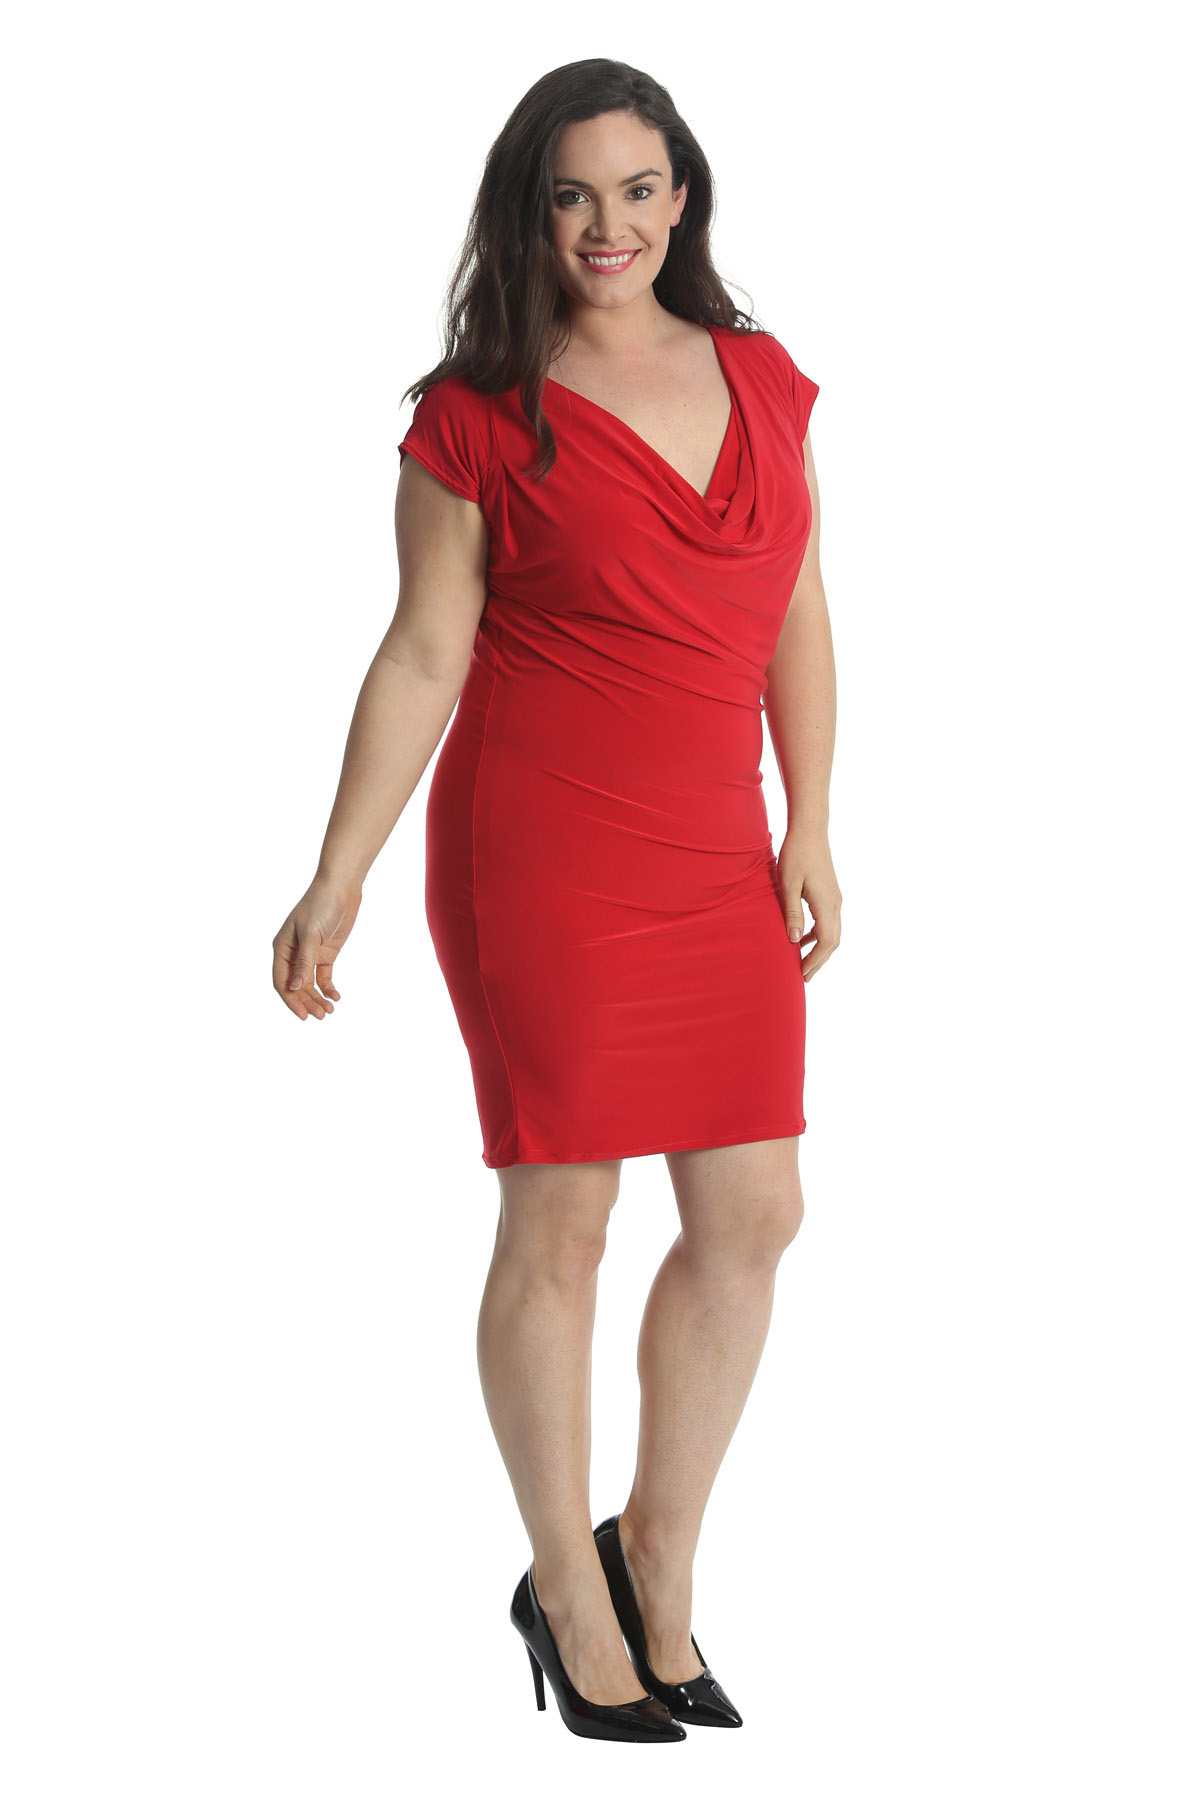 Plus women size in for dresses bodycon